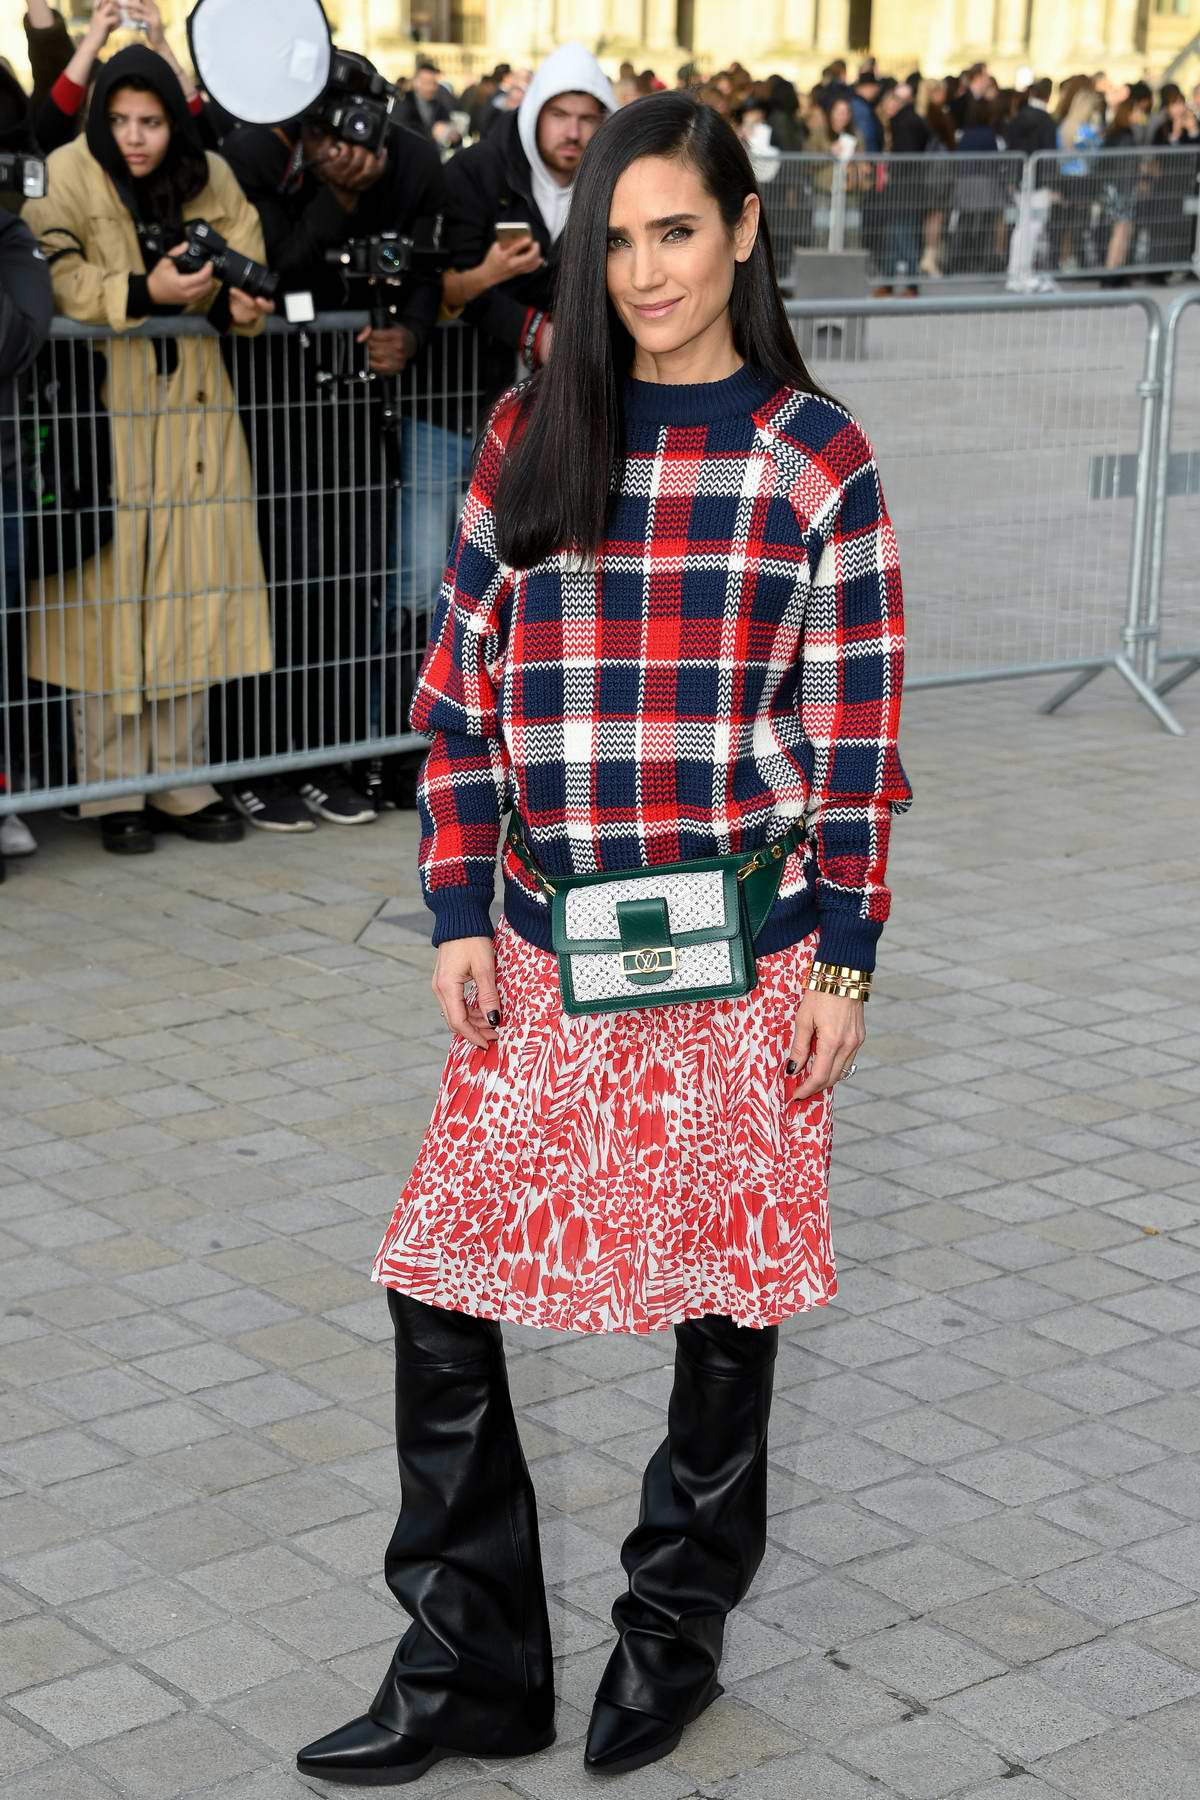 Jennifer Connelly attends the Louis Vuitton show during Paris Fashion Week F/W 2019/20 in Paris, France